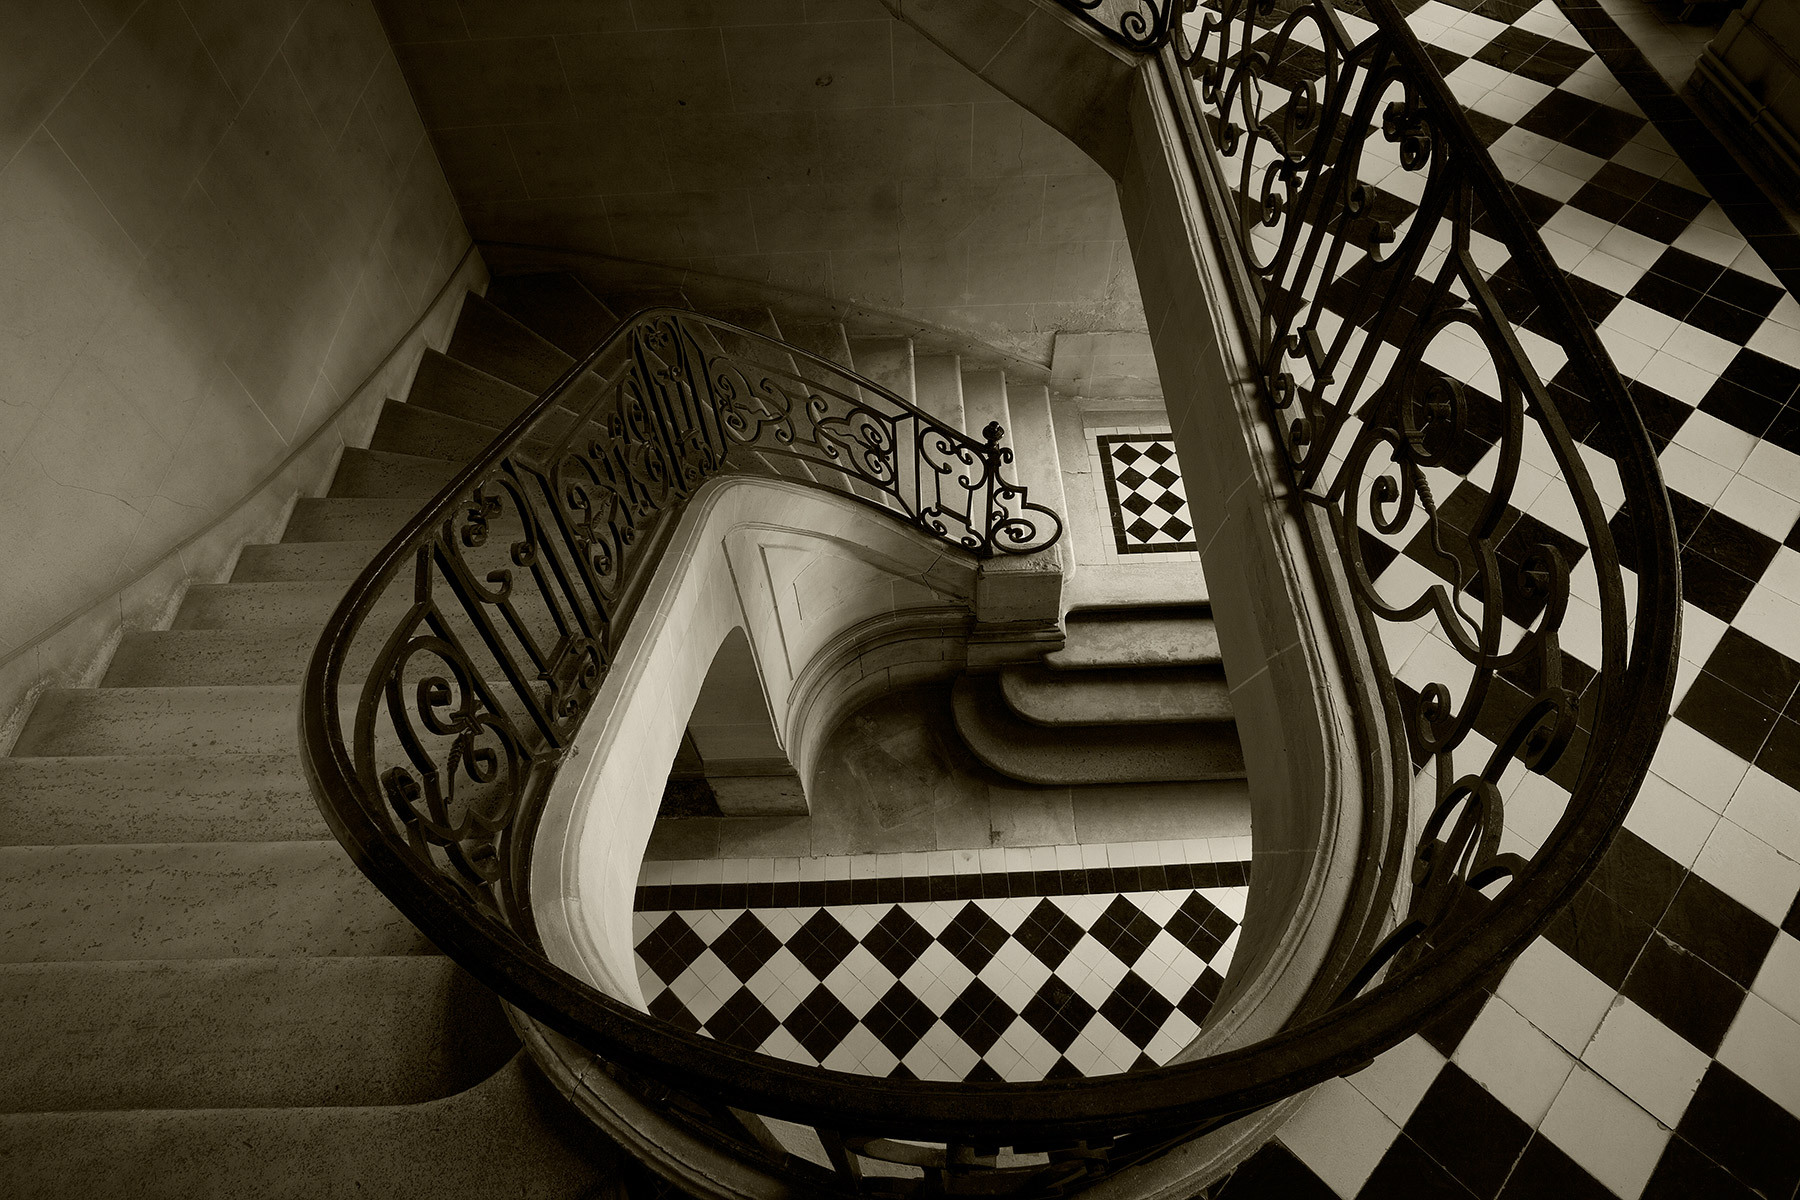 GUERMANTES STAIRCASE DOWNVIEW